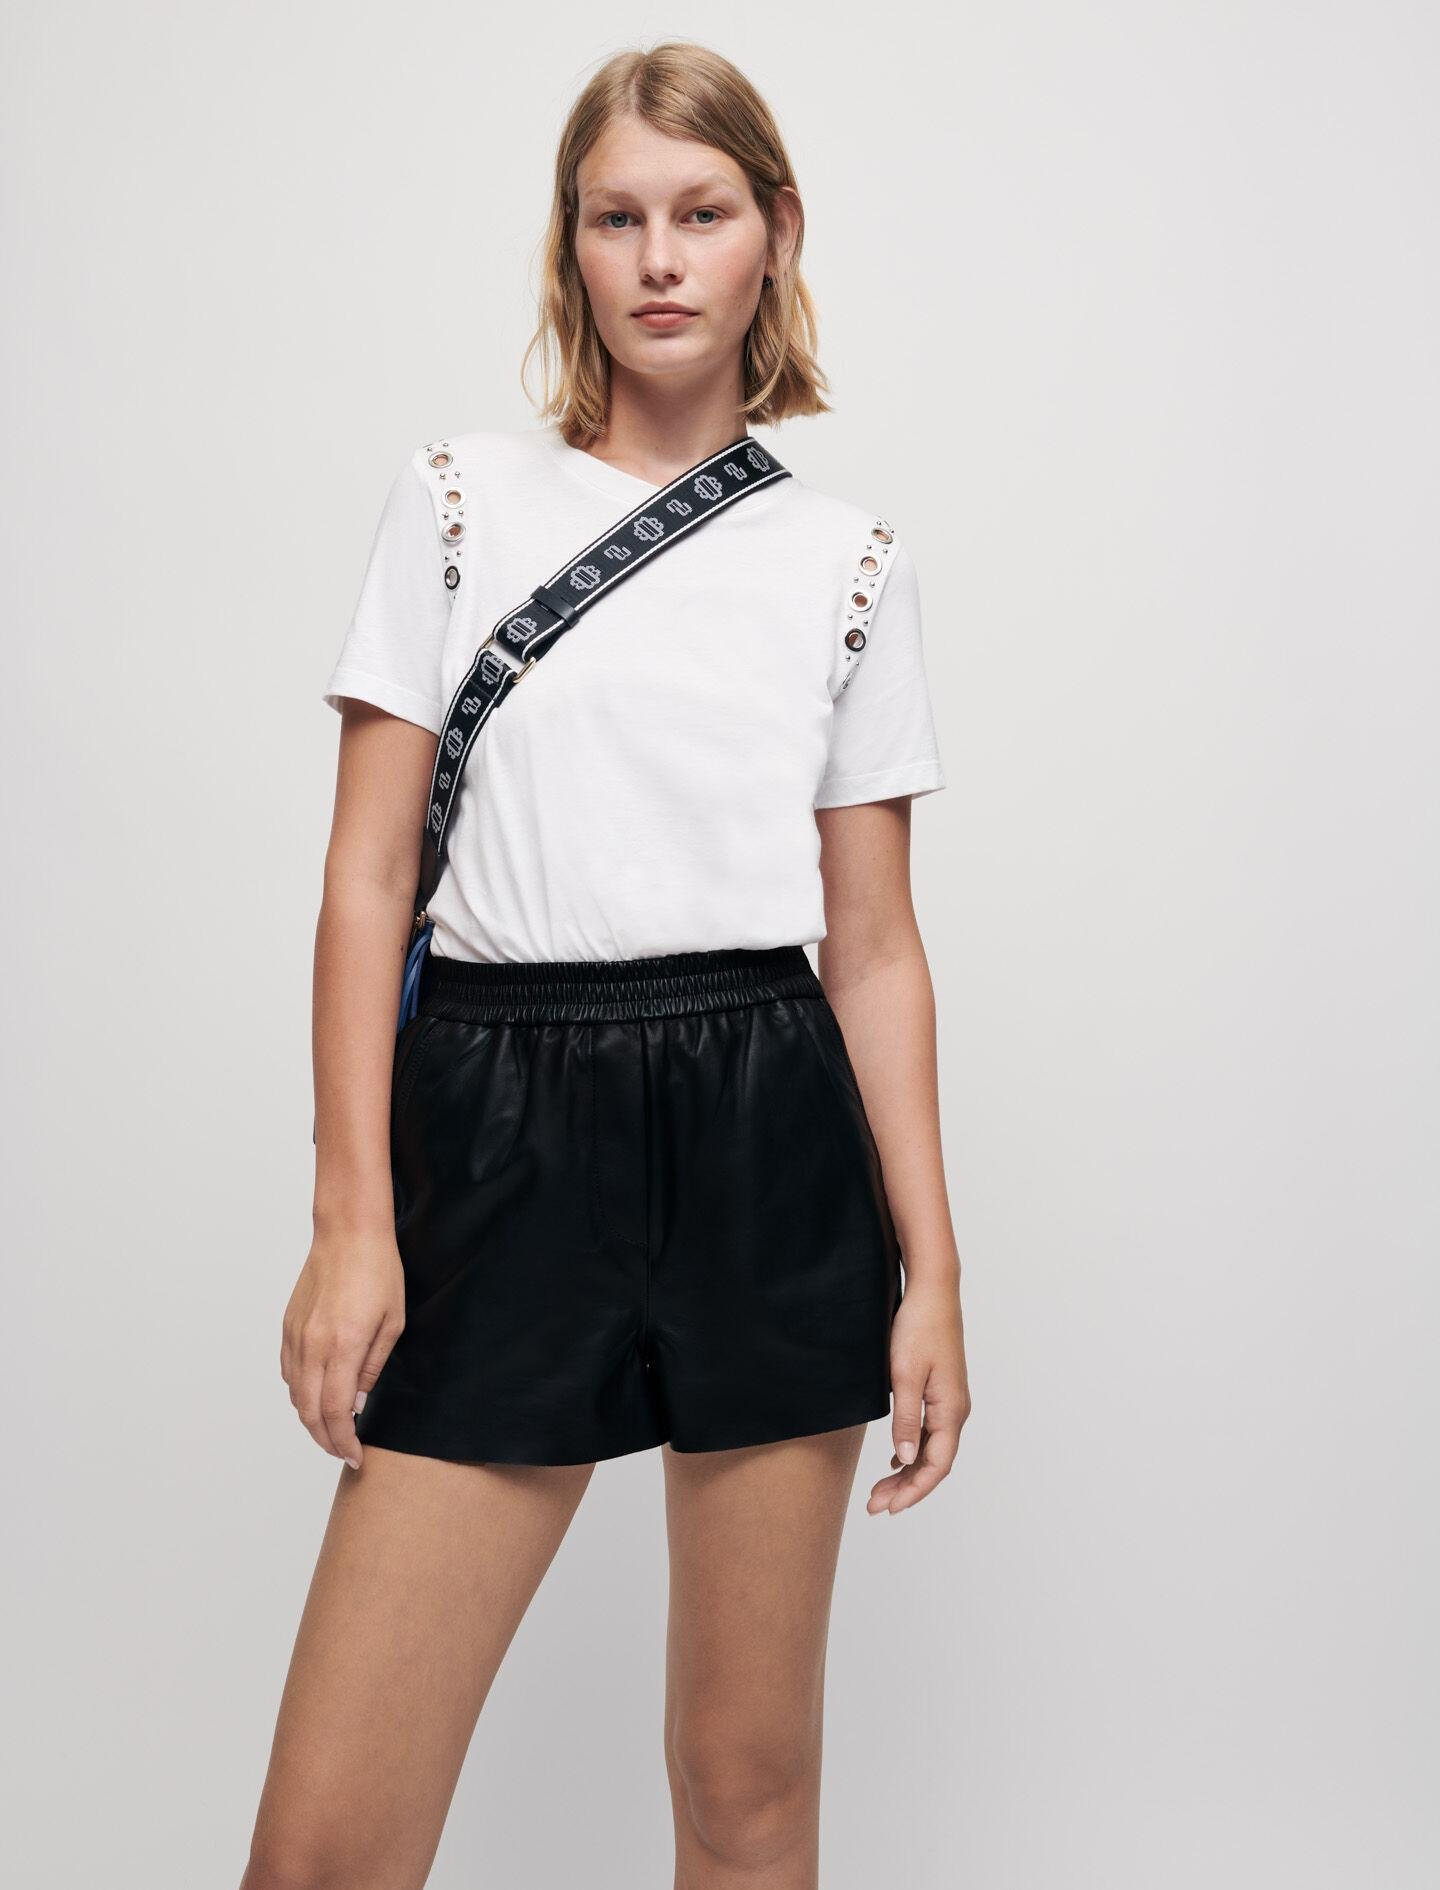 WHITE T-SHIRT WITH ROCK EYELETS 2